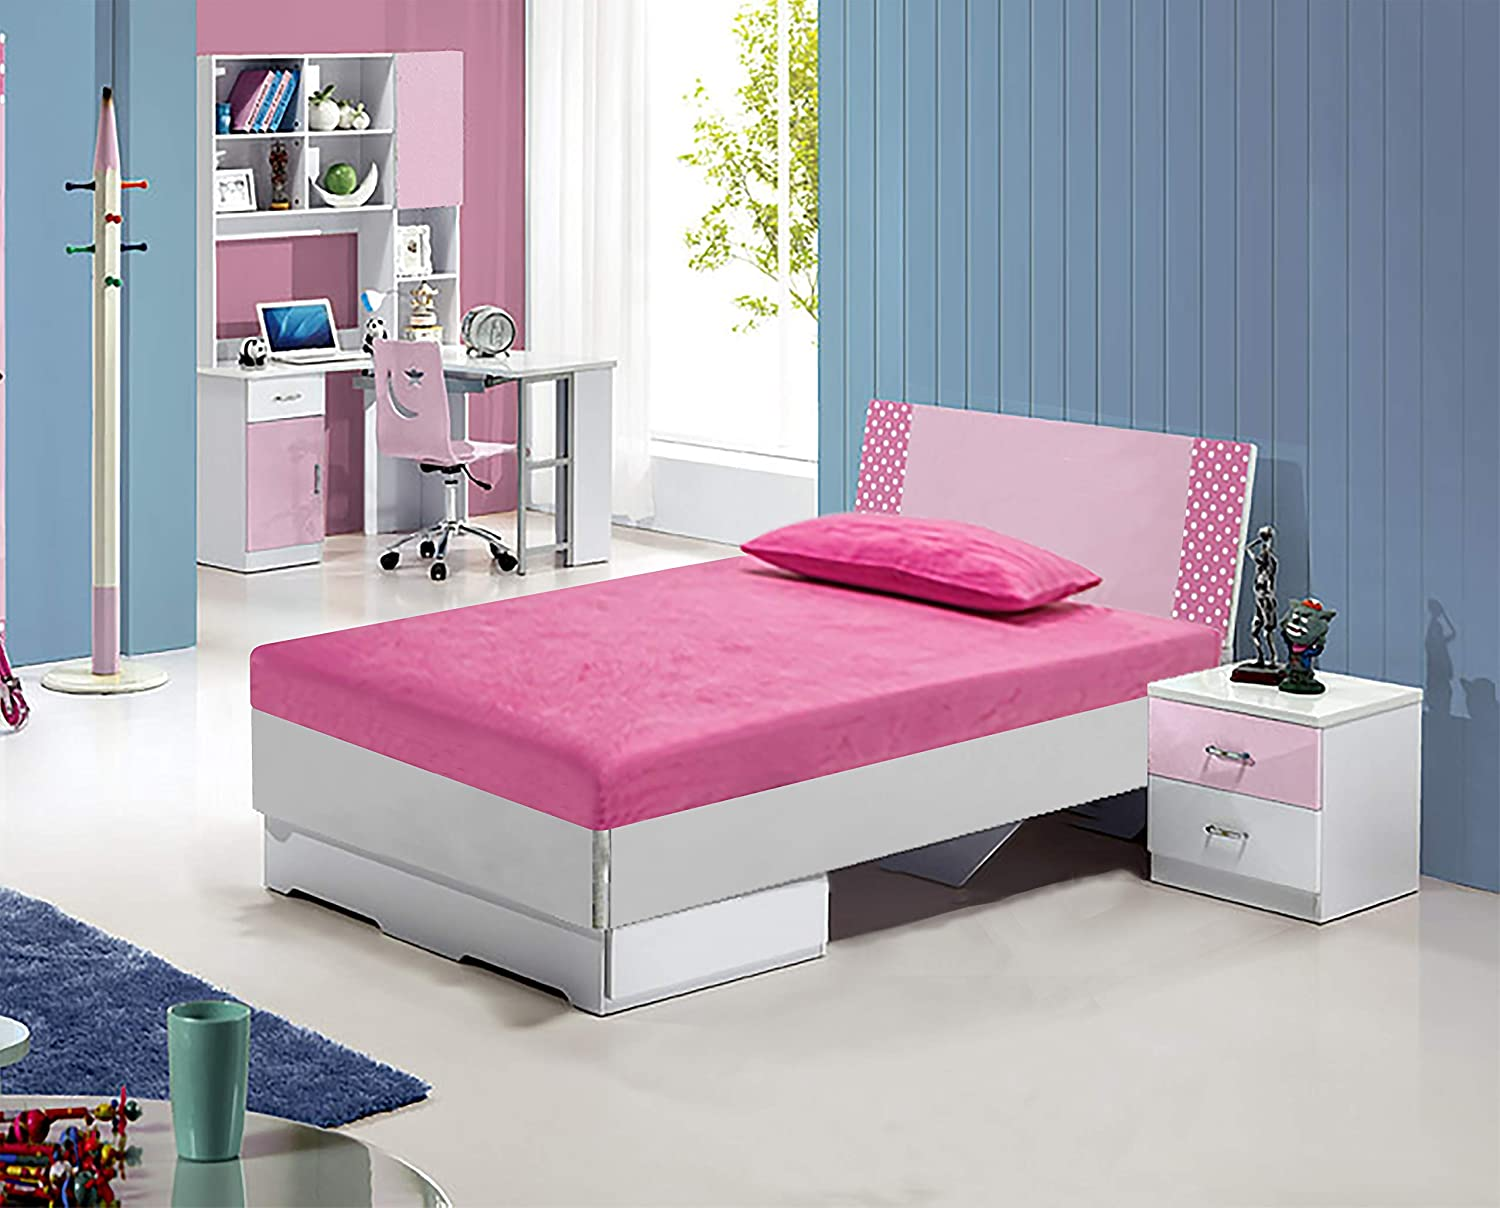 Irvine Home Collection M7Pink Kids 6 Gel Memory Foam Size Mattress, Twin, Pink